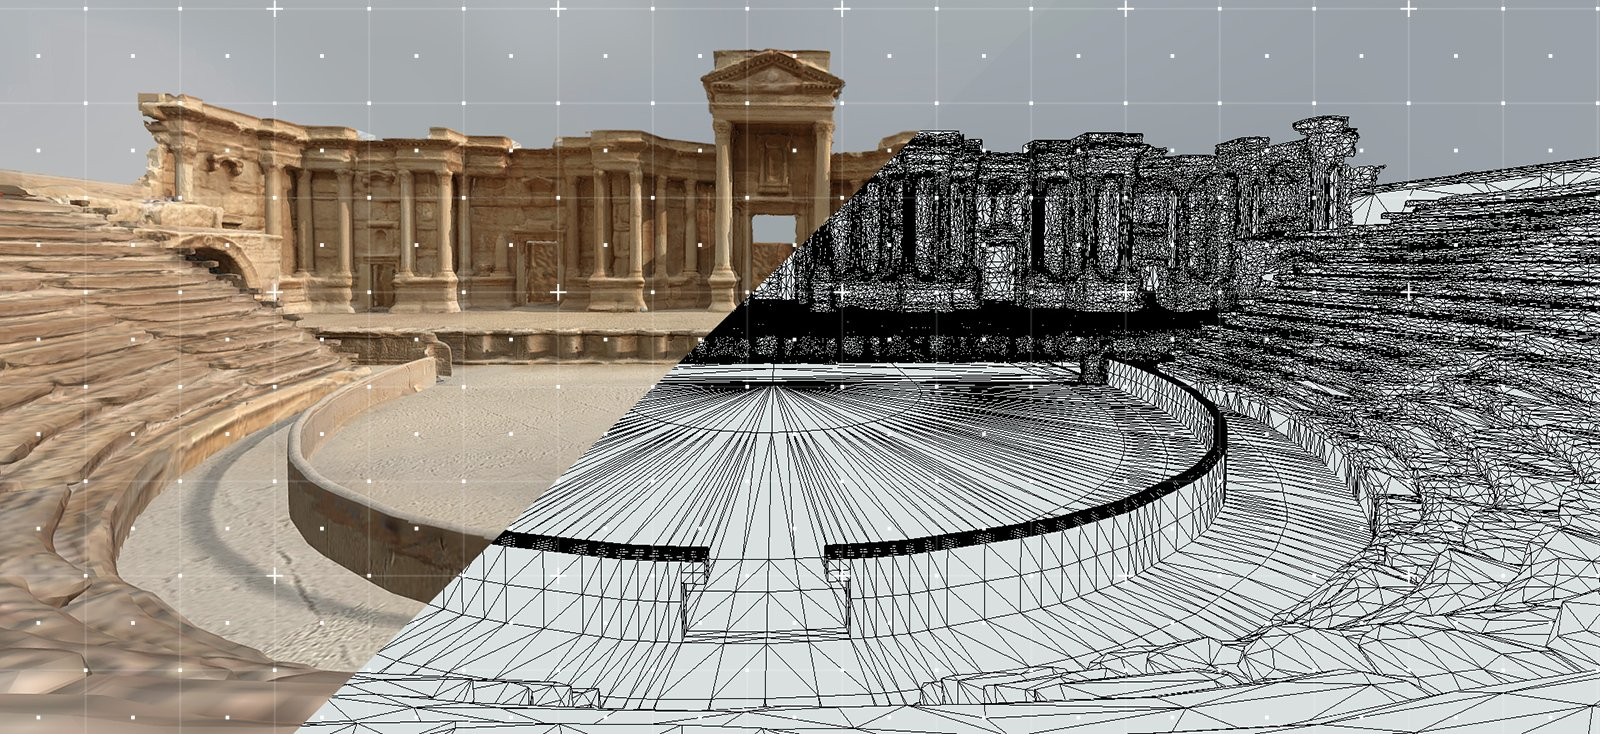 Perpetuity | Palmyra by The Arc/k Project consists of several sites: the Temple of Bel, the Arch of Triumph, The Roman Theatre, and the Fakhr-al-Din al-Ma'ani Castle in Palmyra, Syria graphic